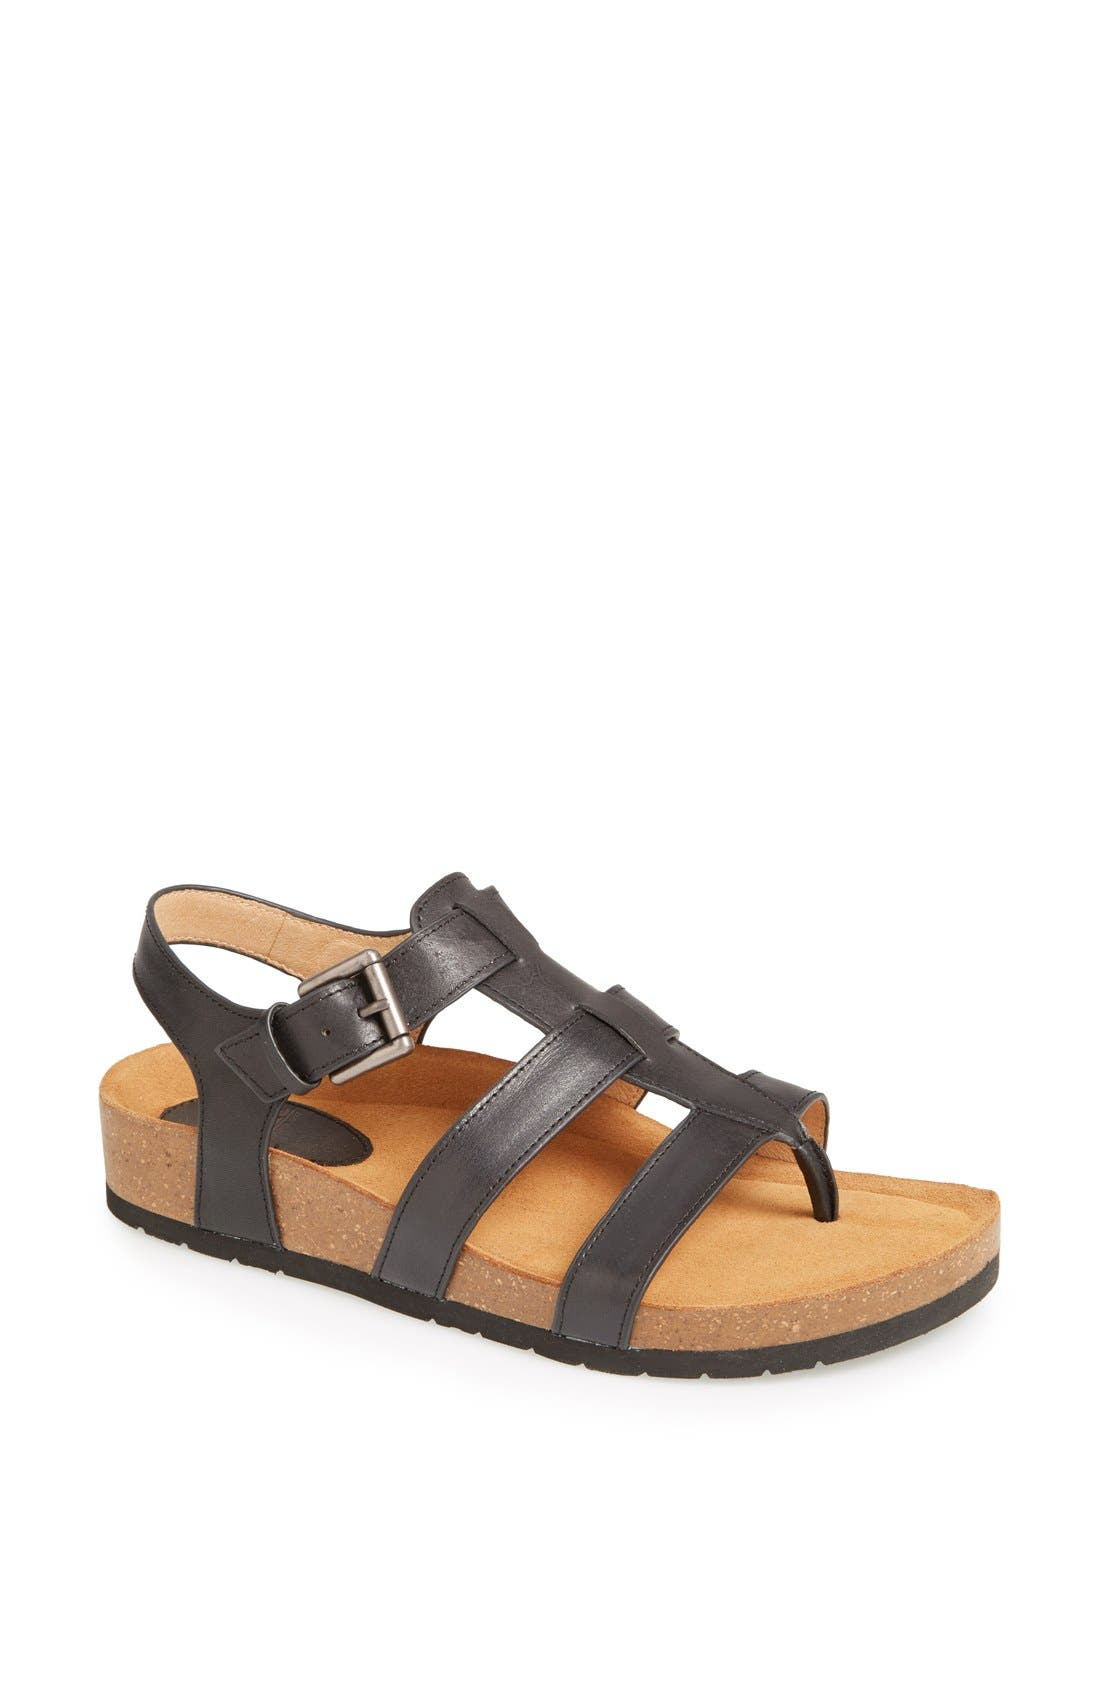 Alternate Image 1 Selected - Söfft 'Burdette' Leather Sandal